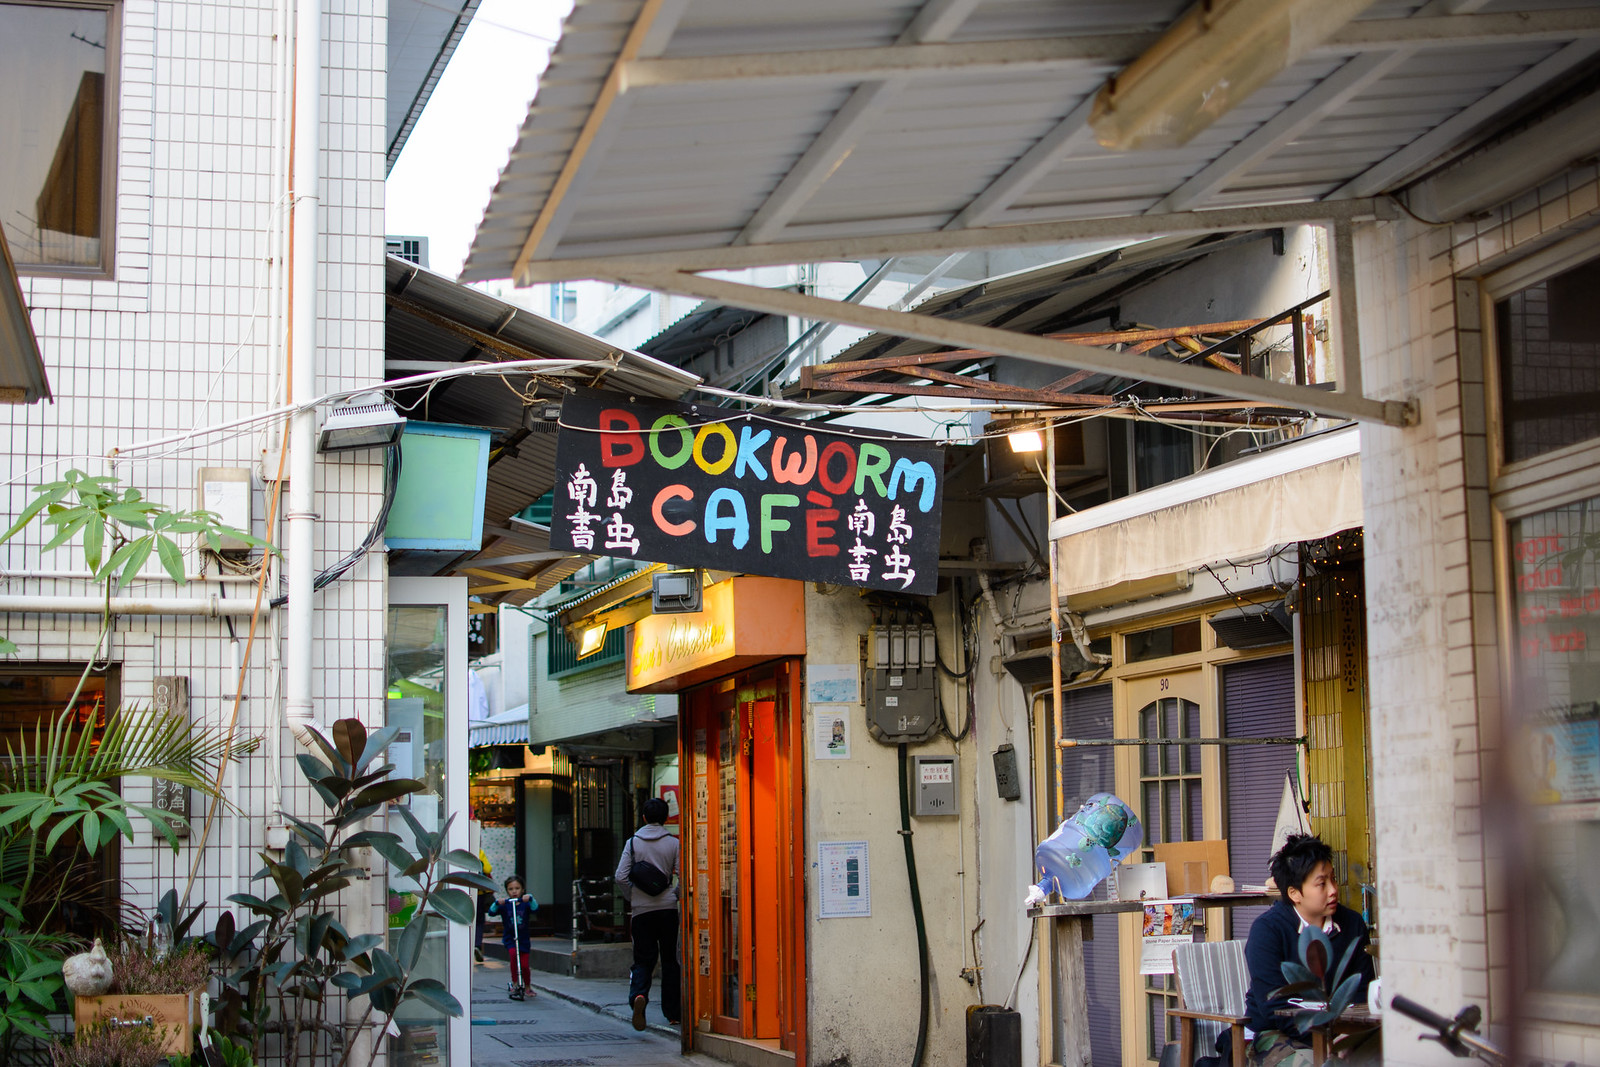 Bookworm Cafe 南島書蟲